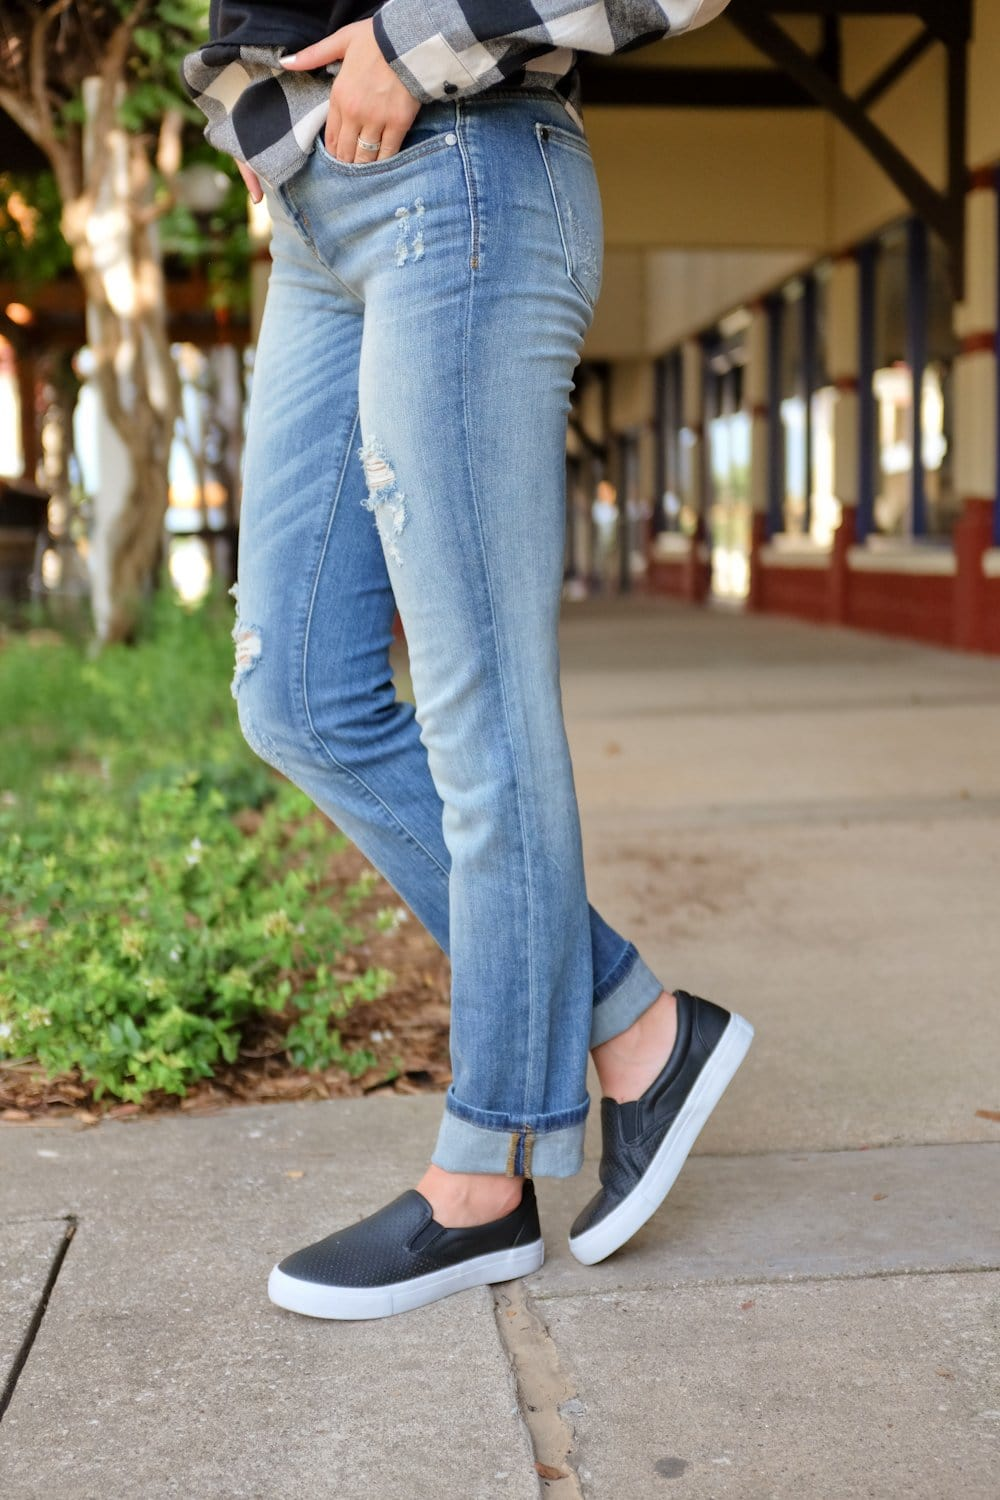 WEAR THEM WELL MEDIUM WASH JEANS - Infinity Raine